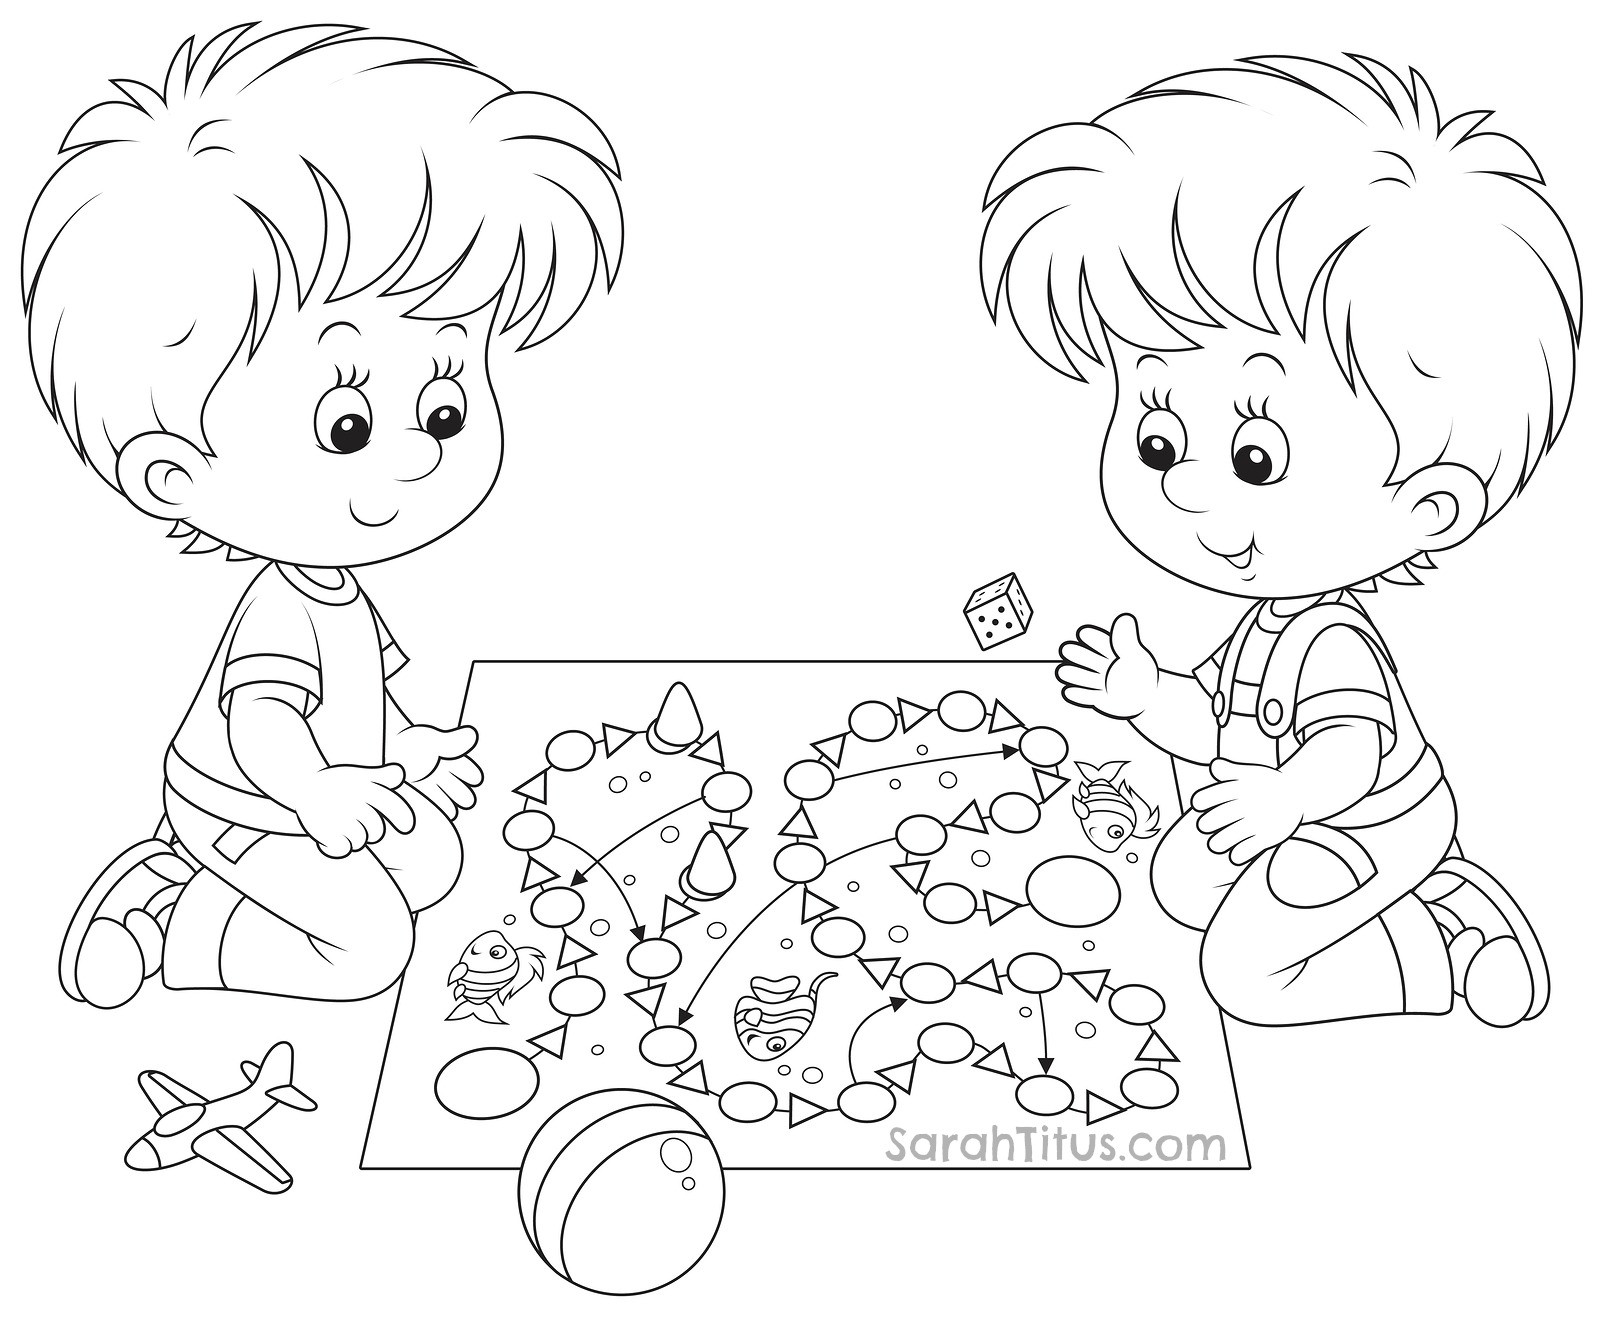 Coloring Pages For Kids Games  Colouring Drawing Games at GetDrawings